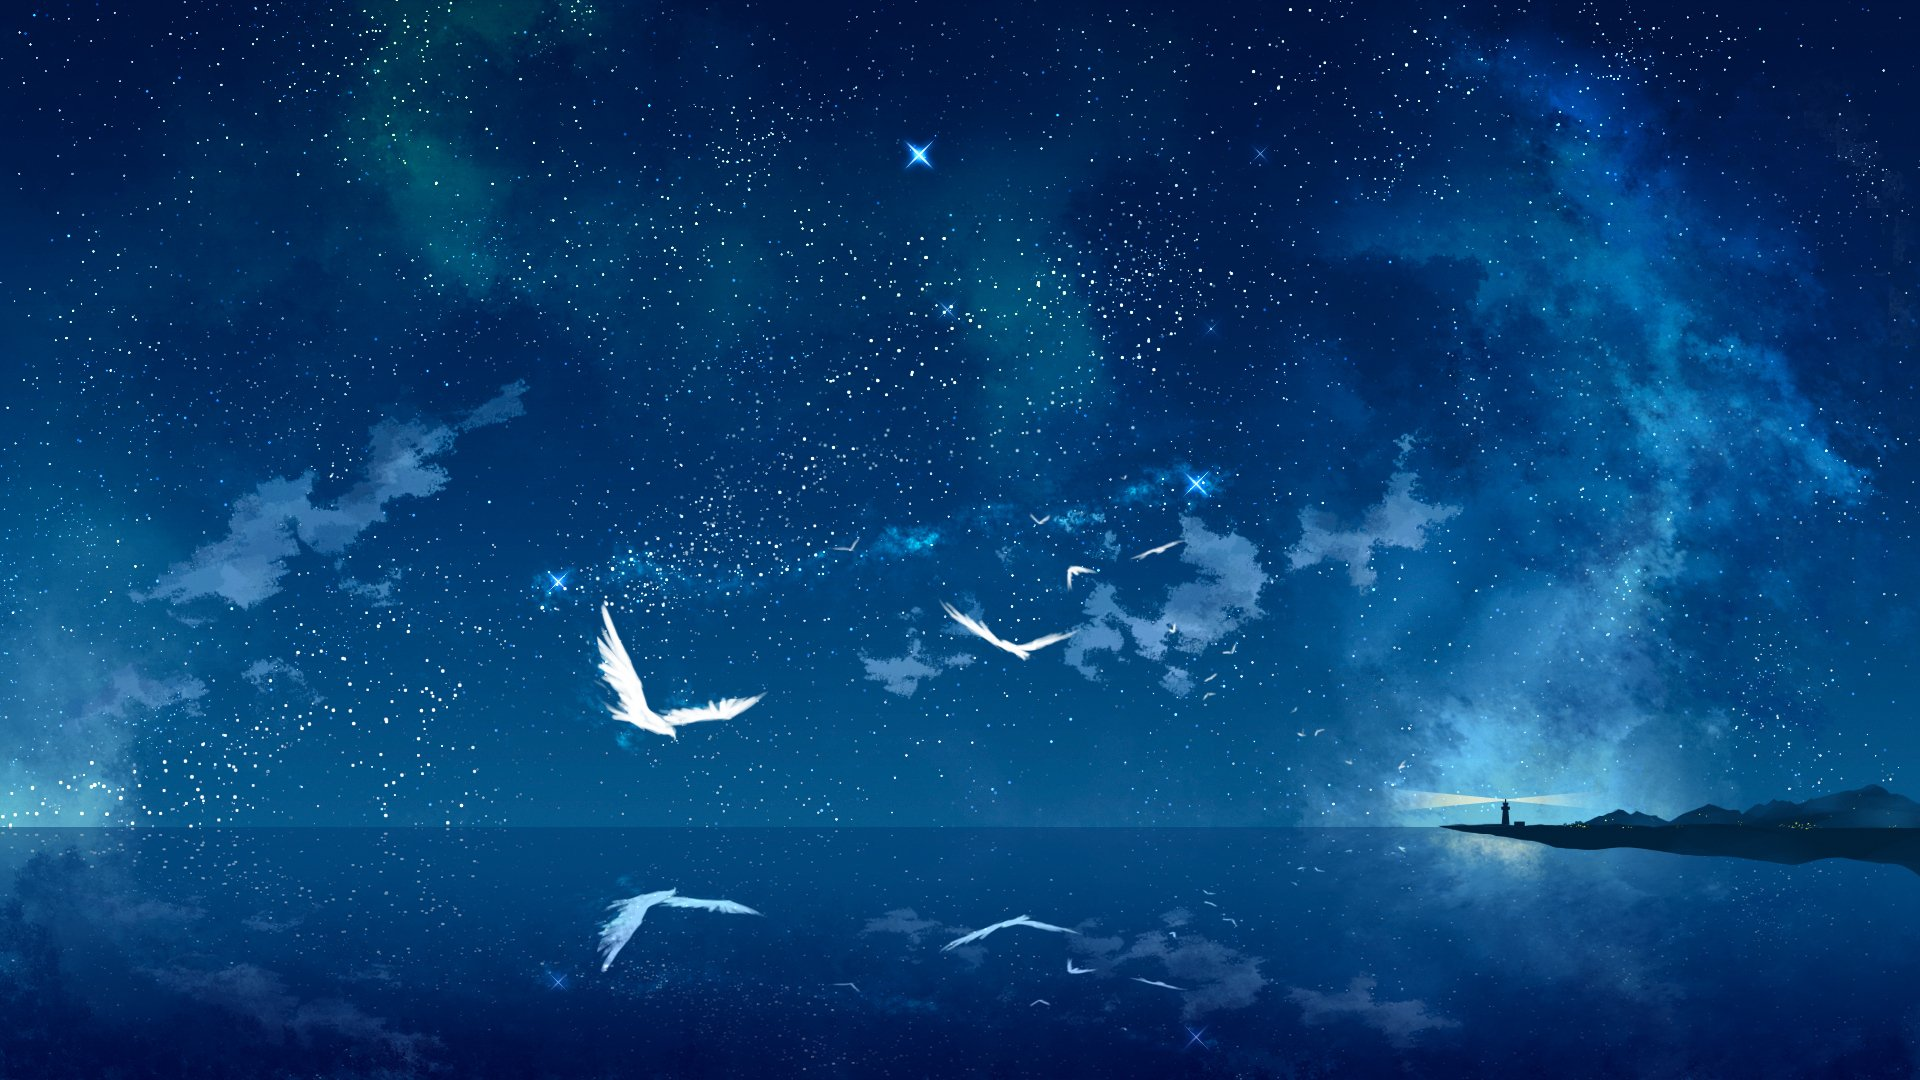 391 Starry Sky HD Wallpapers